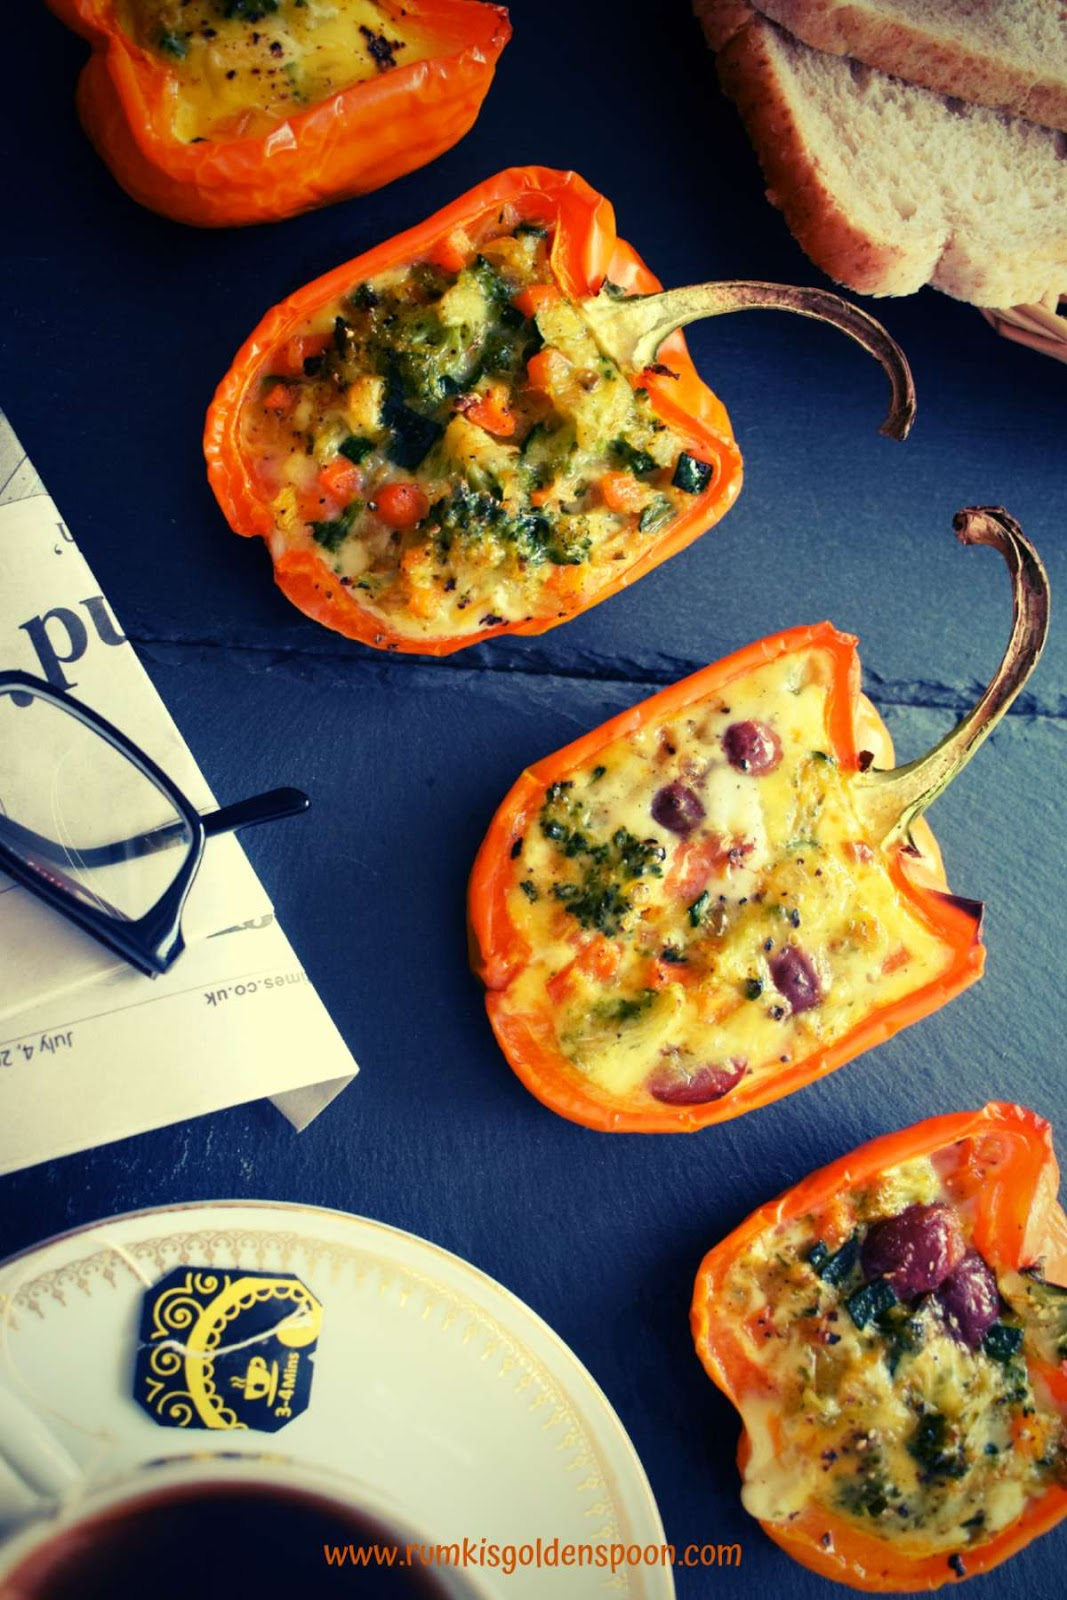 Stuffed Bell Peppers| Capsicum with Eggs & Veggies Without Cheese, Quick and Easy, Rumki's Golden Spoon, Barwa capsicum/ bell peppers, recipe with orange capsicum, bell peppers, baking recipe of vegetables, baking recipe of savoury items, healthy breakfast recipe, capsicum er pur, exotic egg recipes